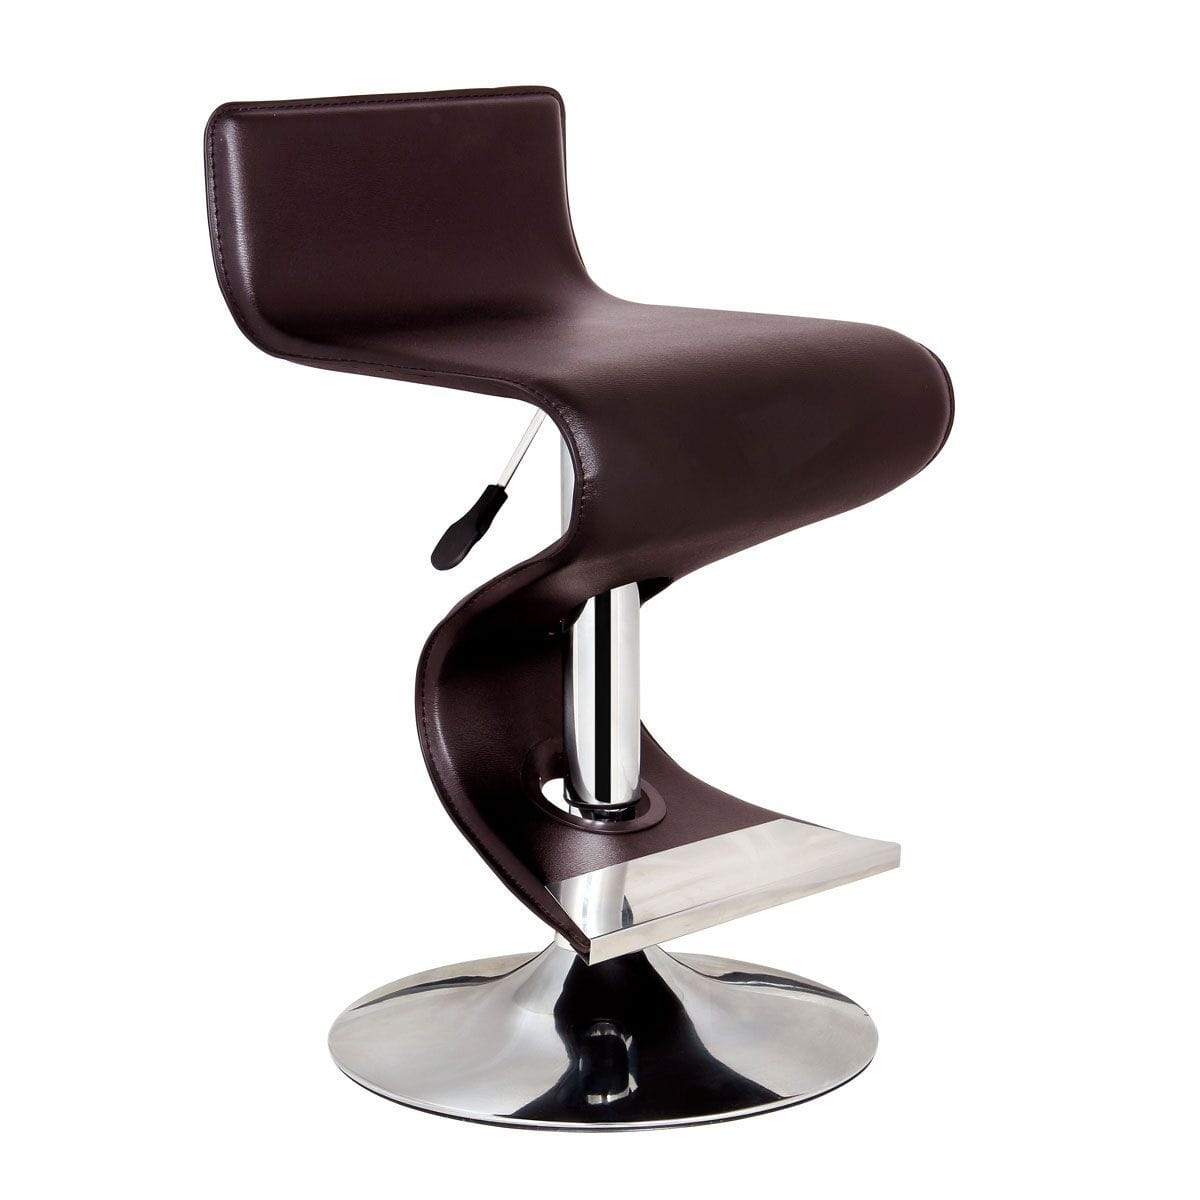 Strange Bromi Design King Brown Adjustable Height Modern Bar Stool Caraccident5 Cool Chair Designs And Ideas Caraccident5Info